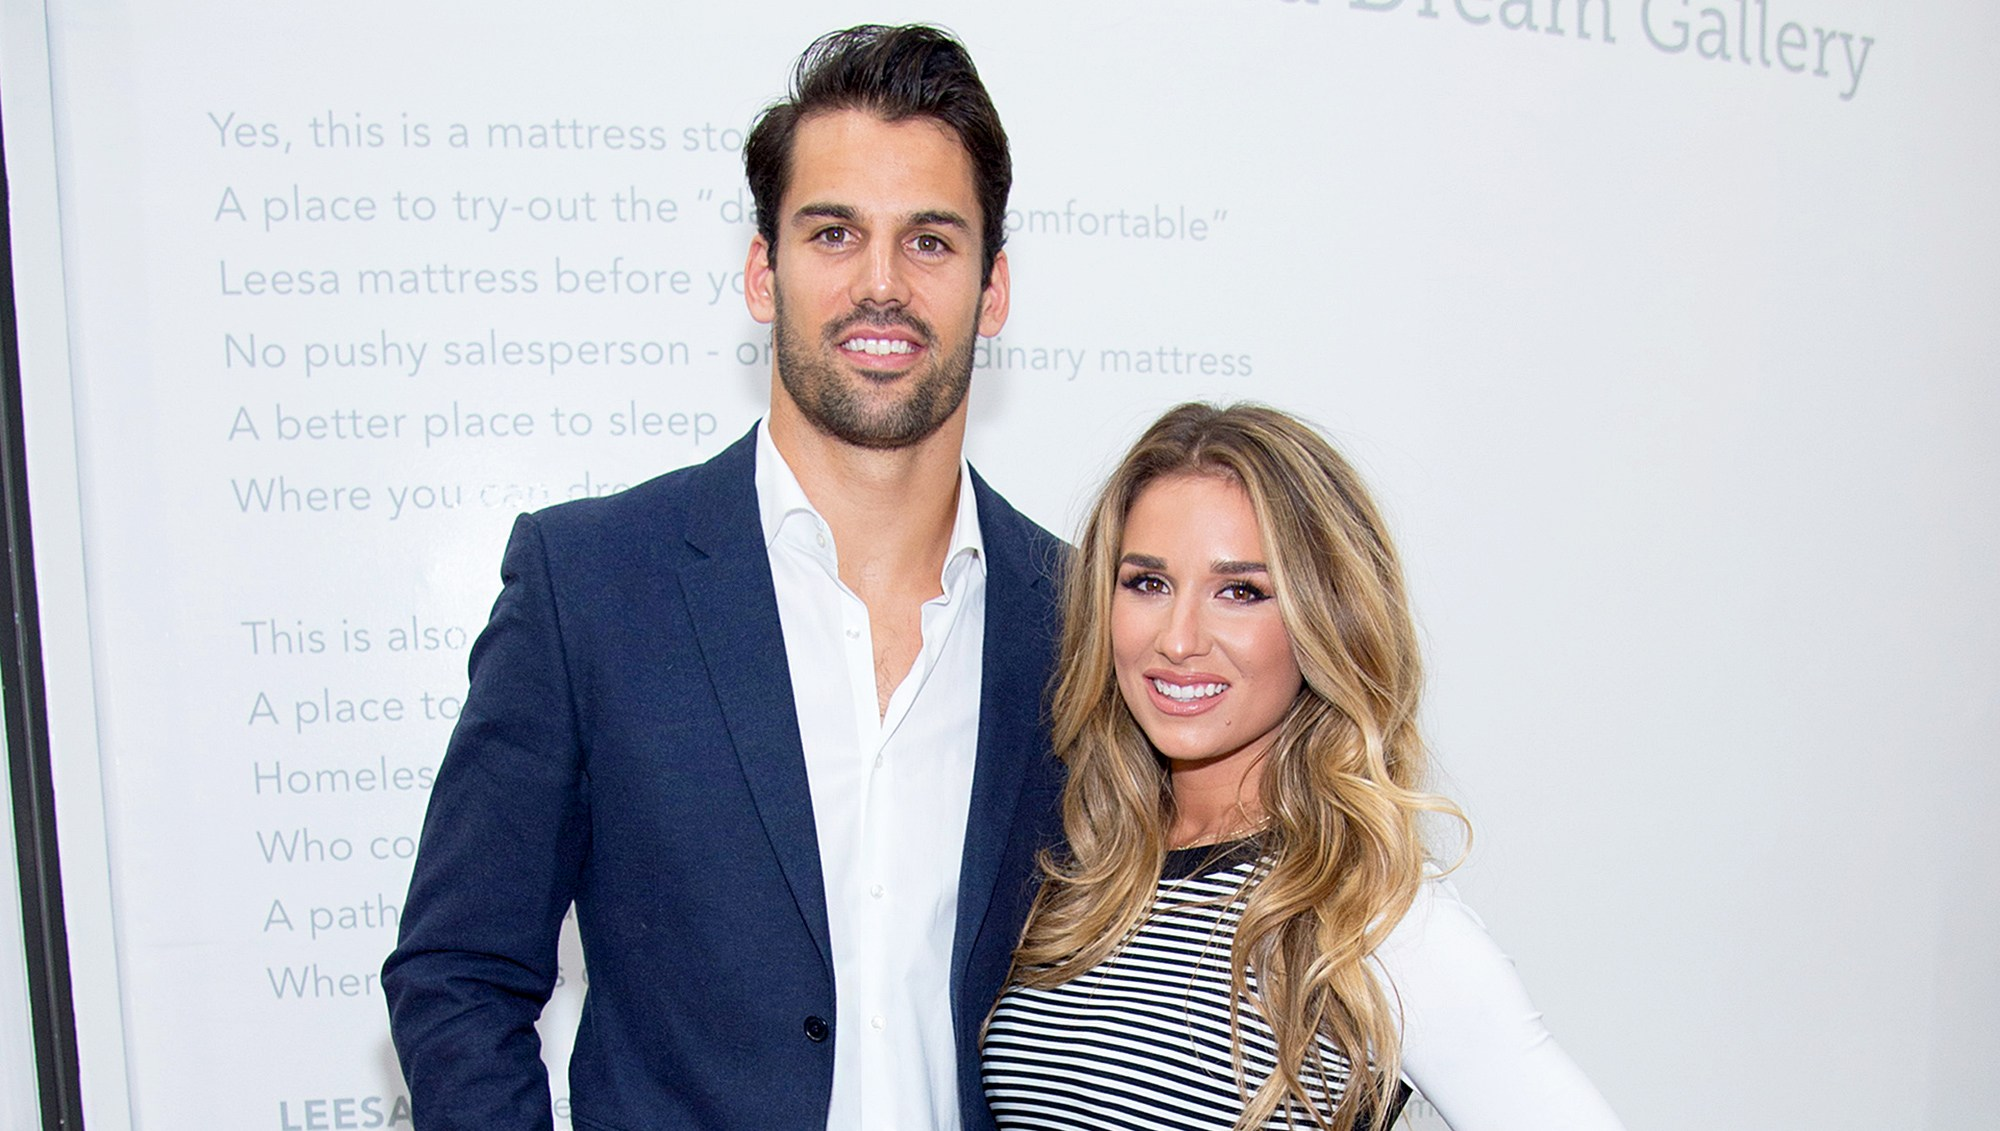 Eric Decker and Jessie James Decker attends The Leesa Dream Home on April 27, 2016 in New York City.